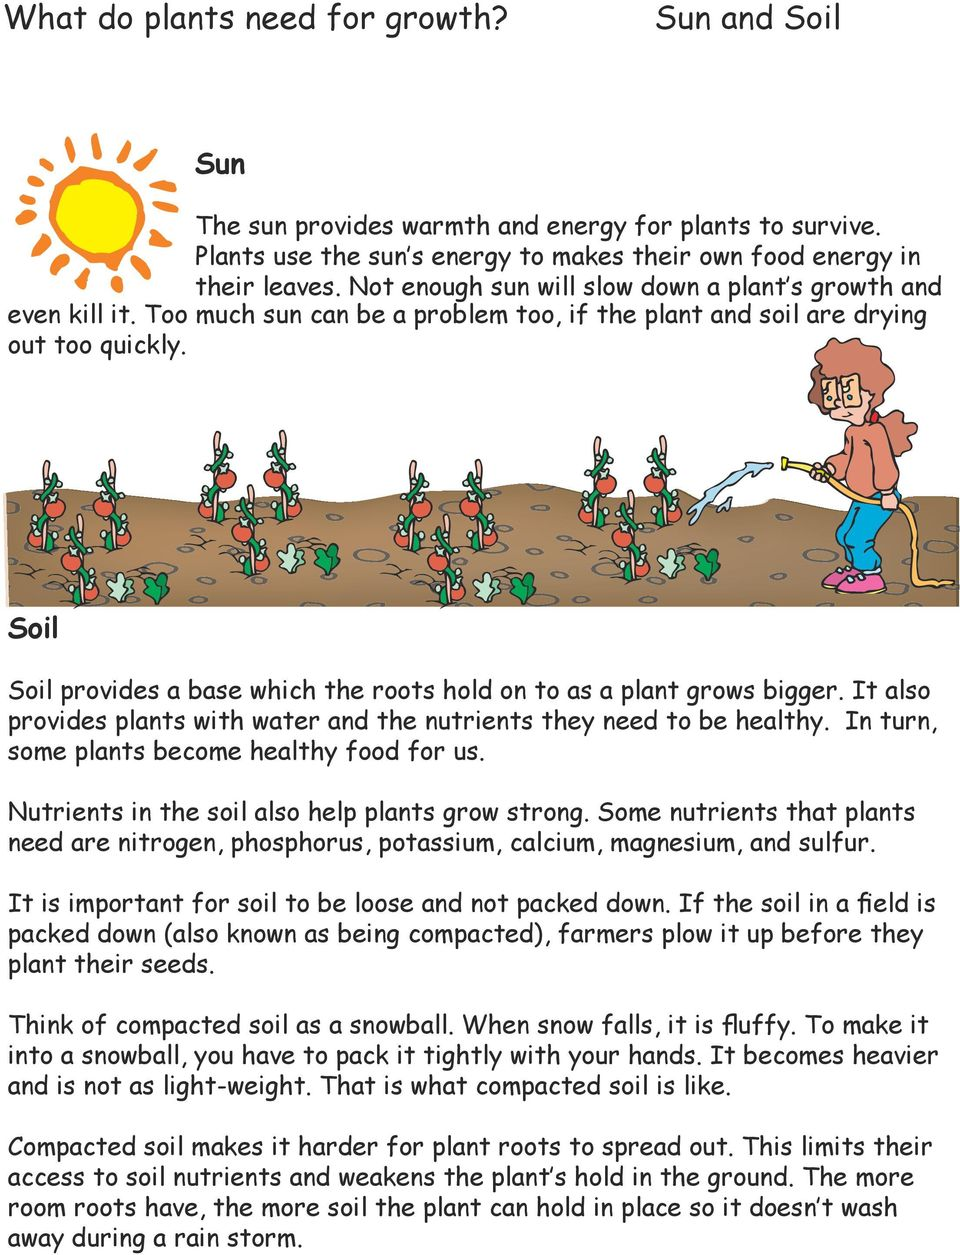 Soil Soil provides a base which the roots hold on to as a plant grows bigger. It also provides plants with water and the nutrients they need to be healthy.